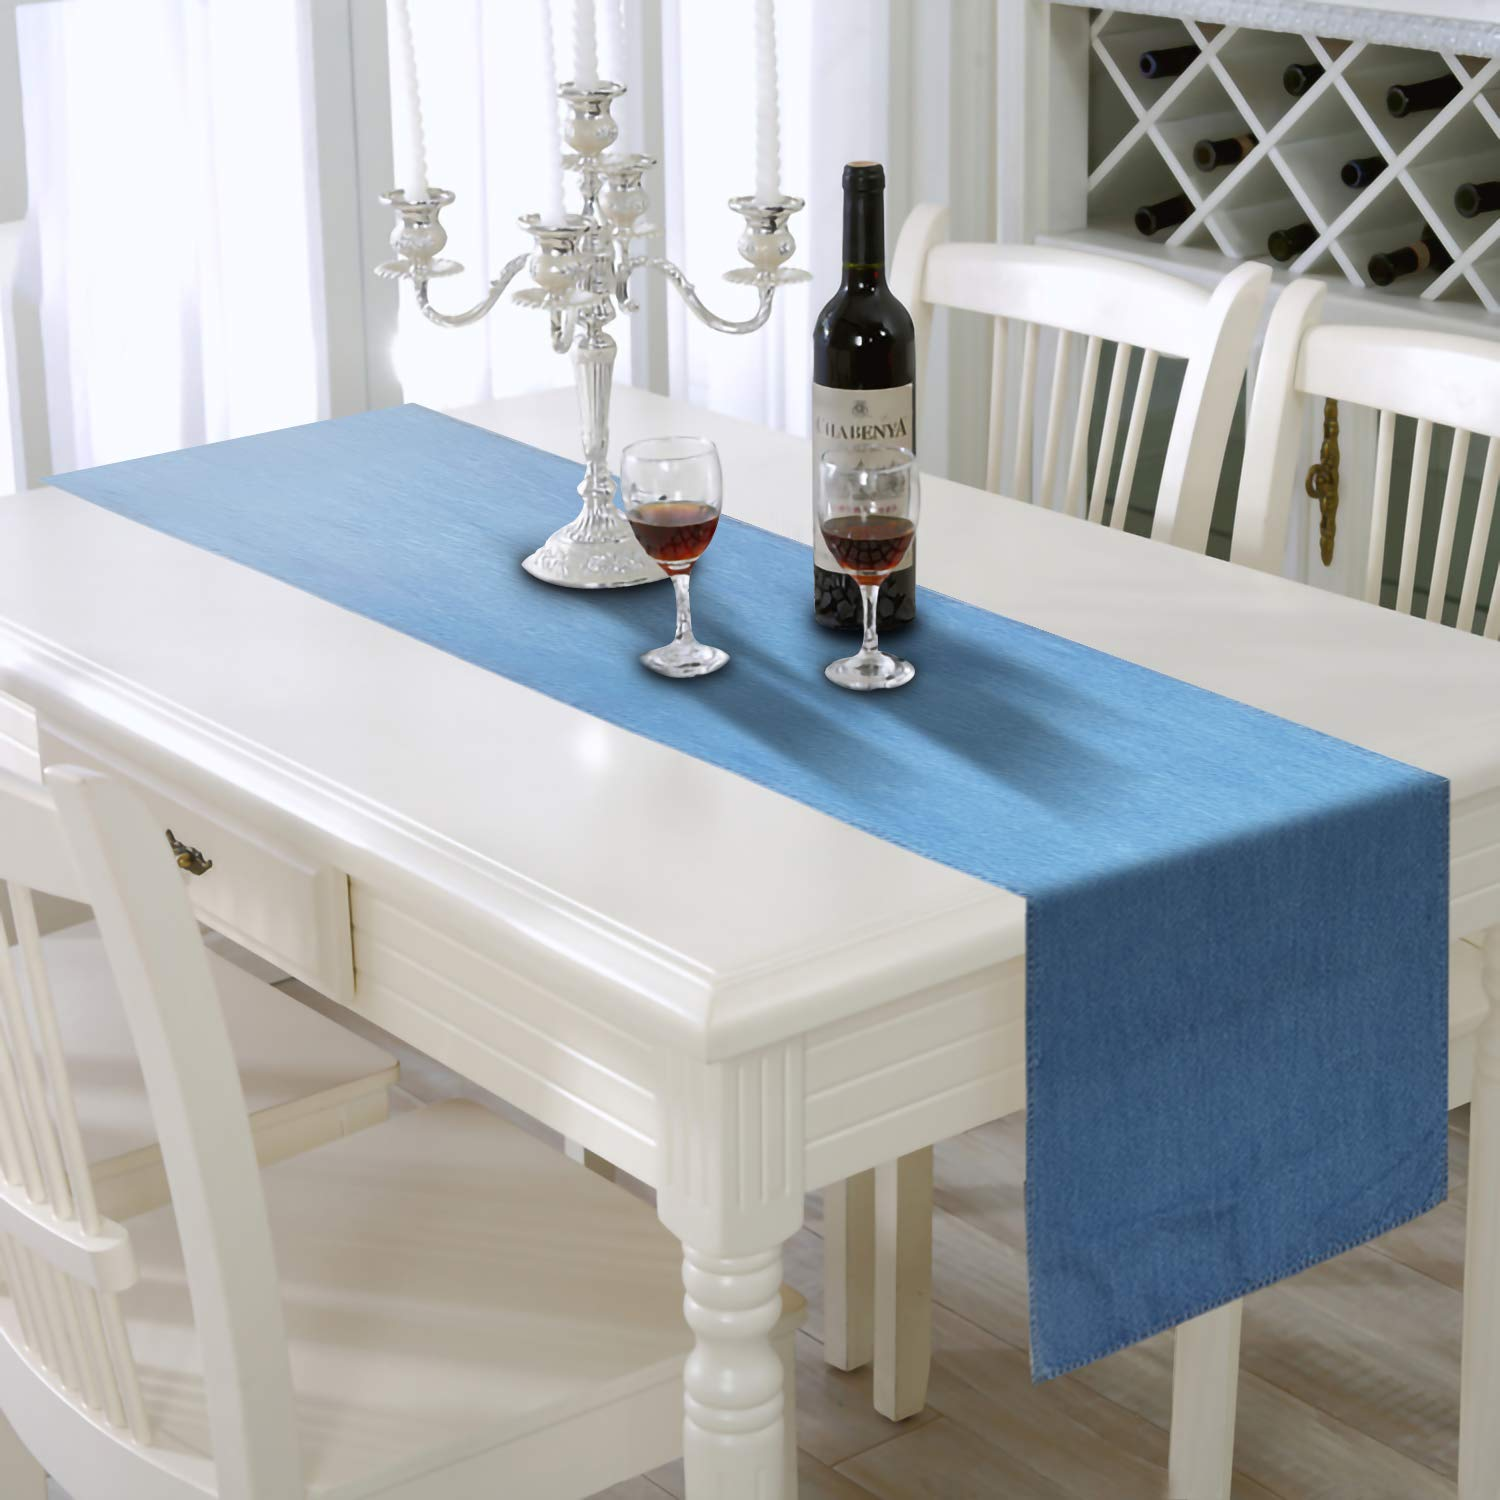 AAYU Blue Denim Table Runner | Premium Quality Stone Washed | 13 inch X 108 inch | Light Wash